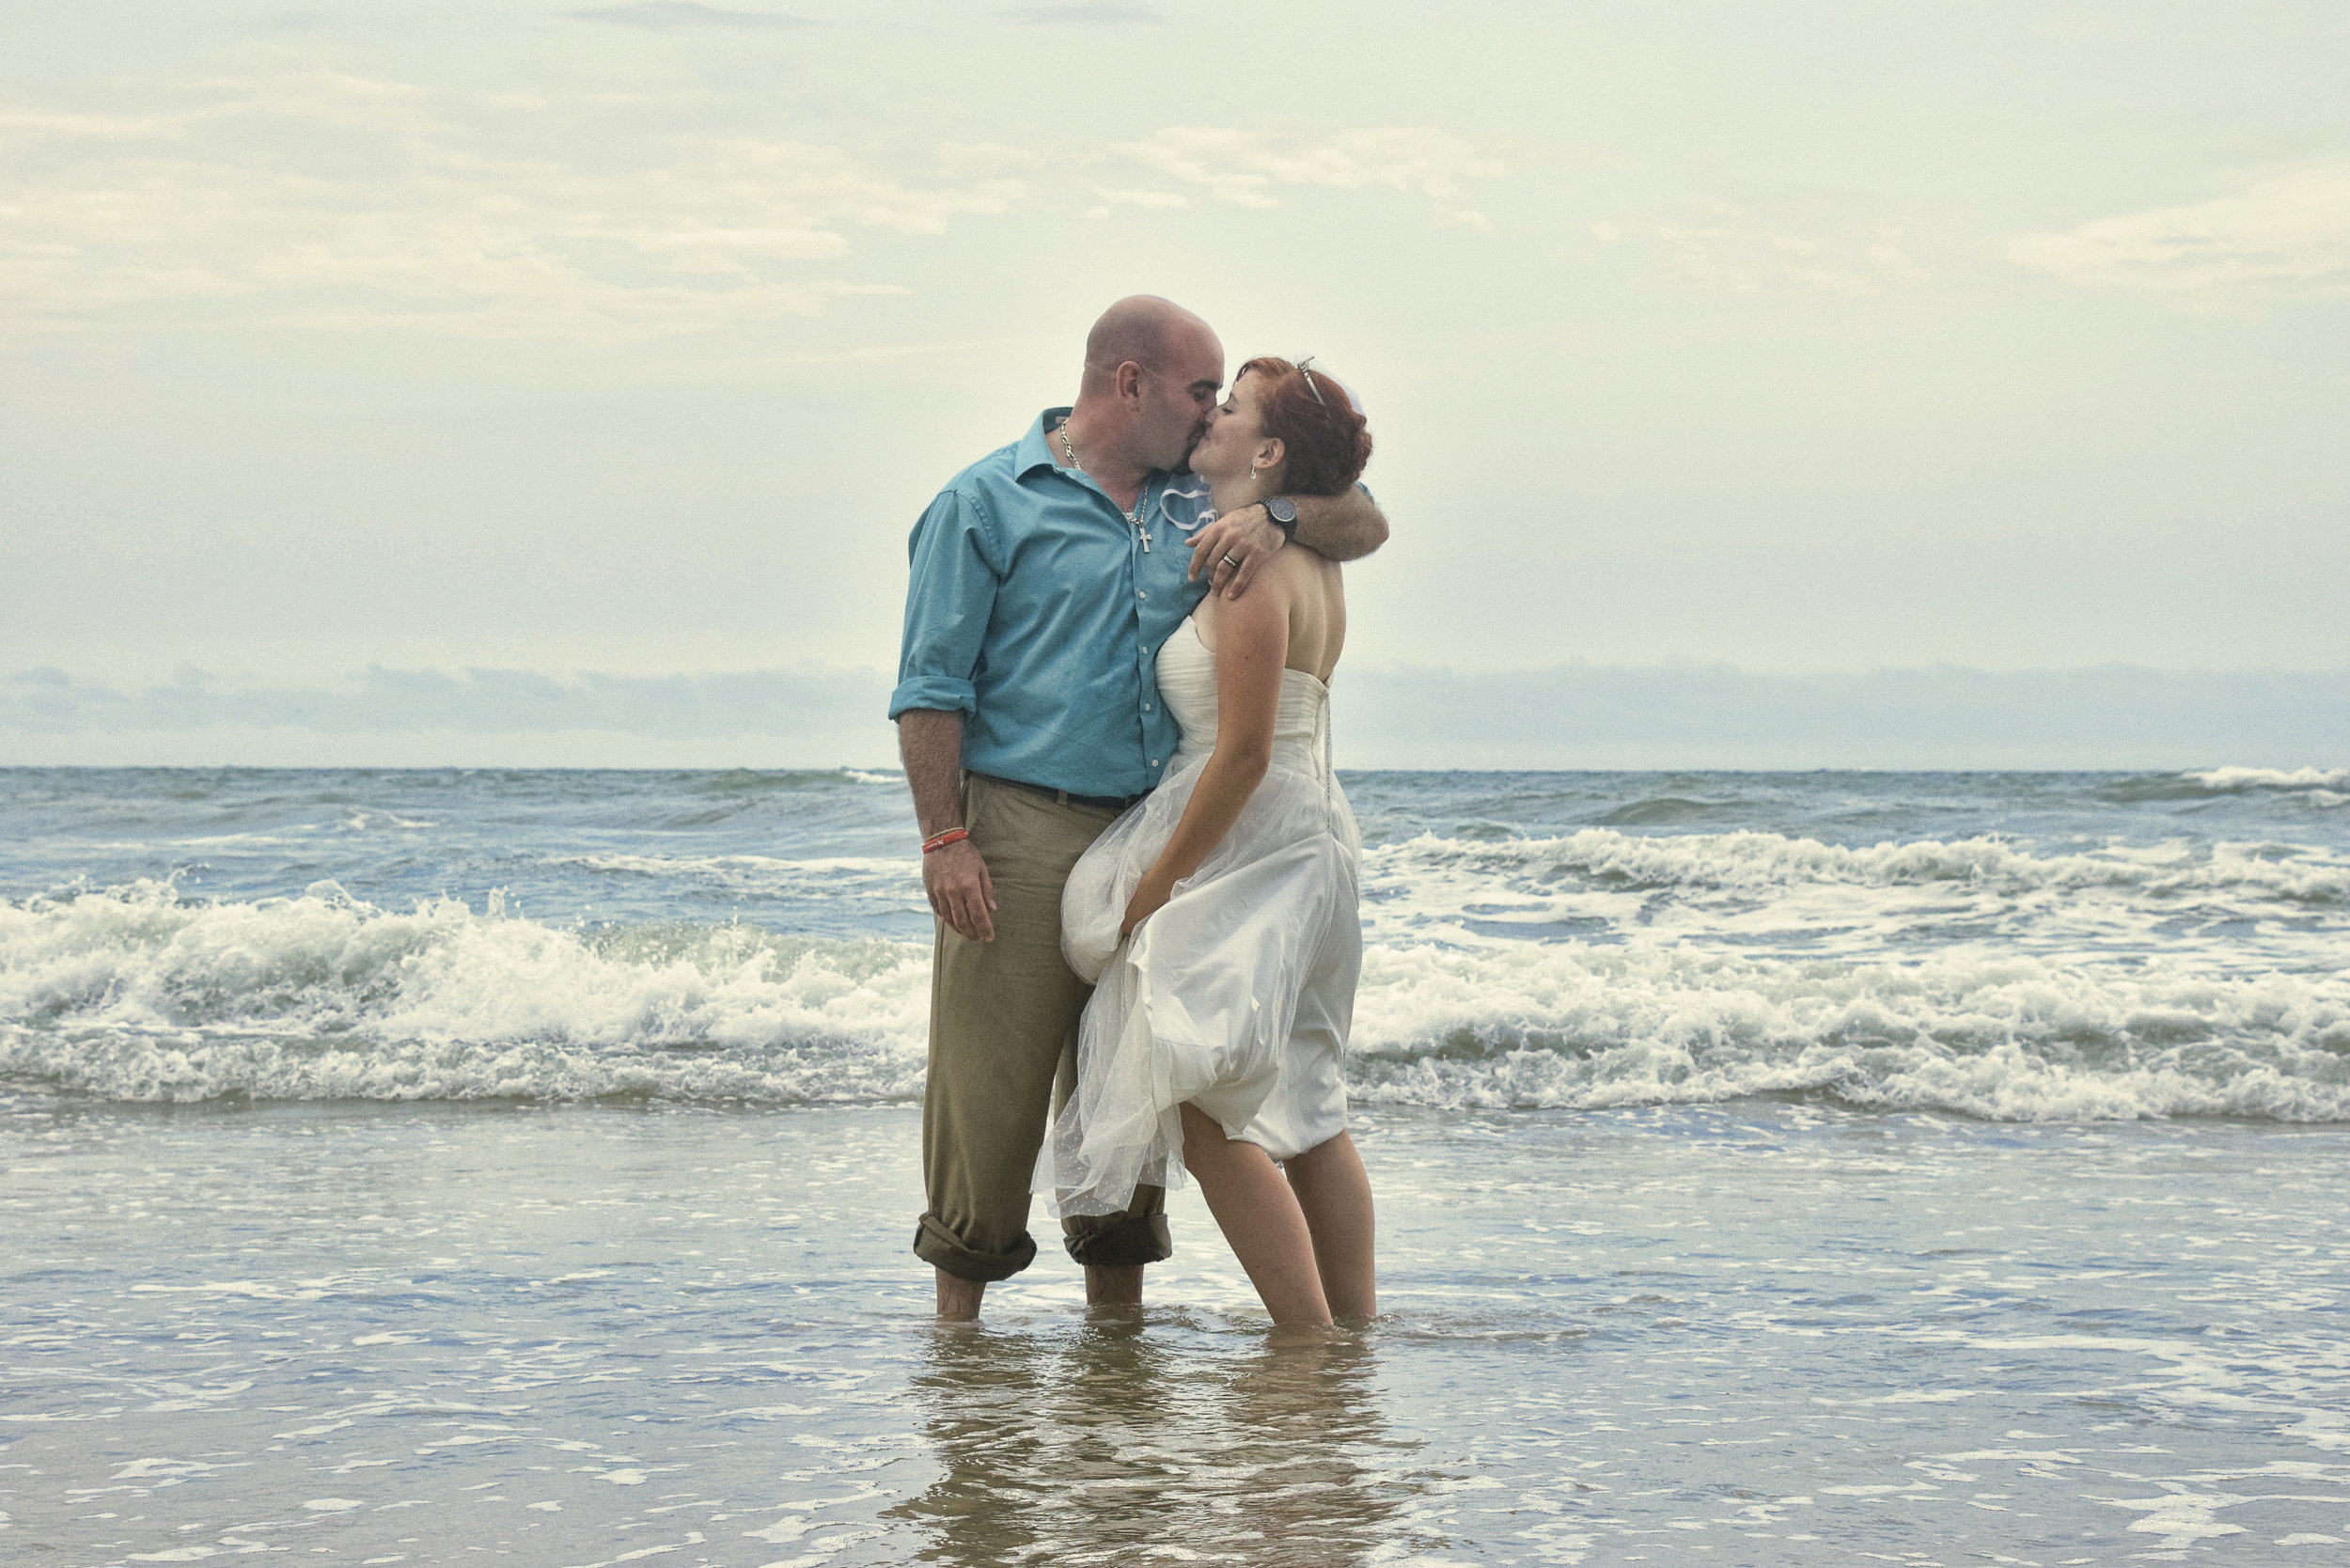 Bride and groom kissing while standing in the ocean.